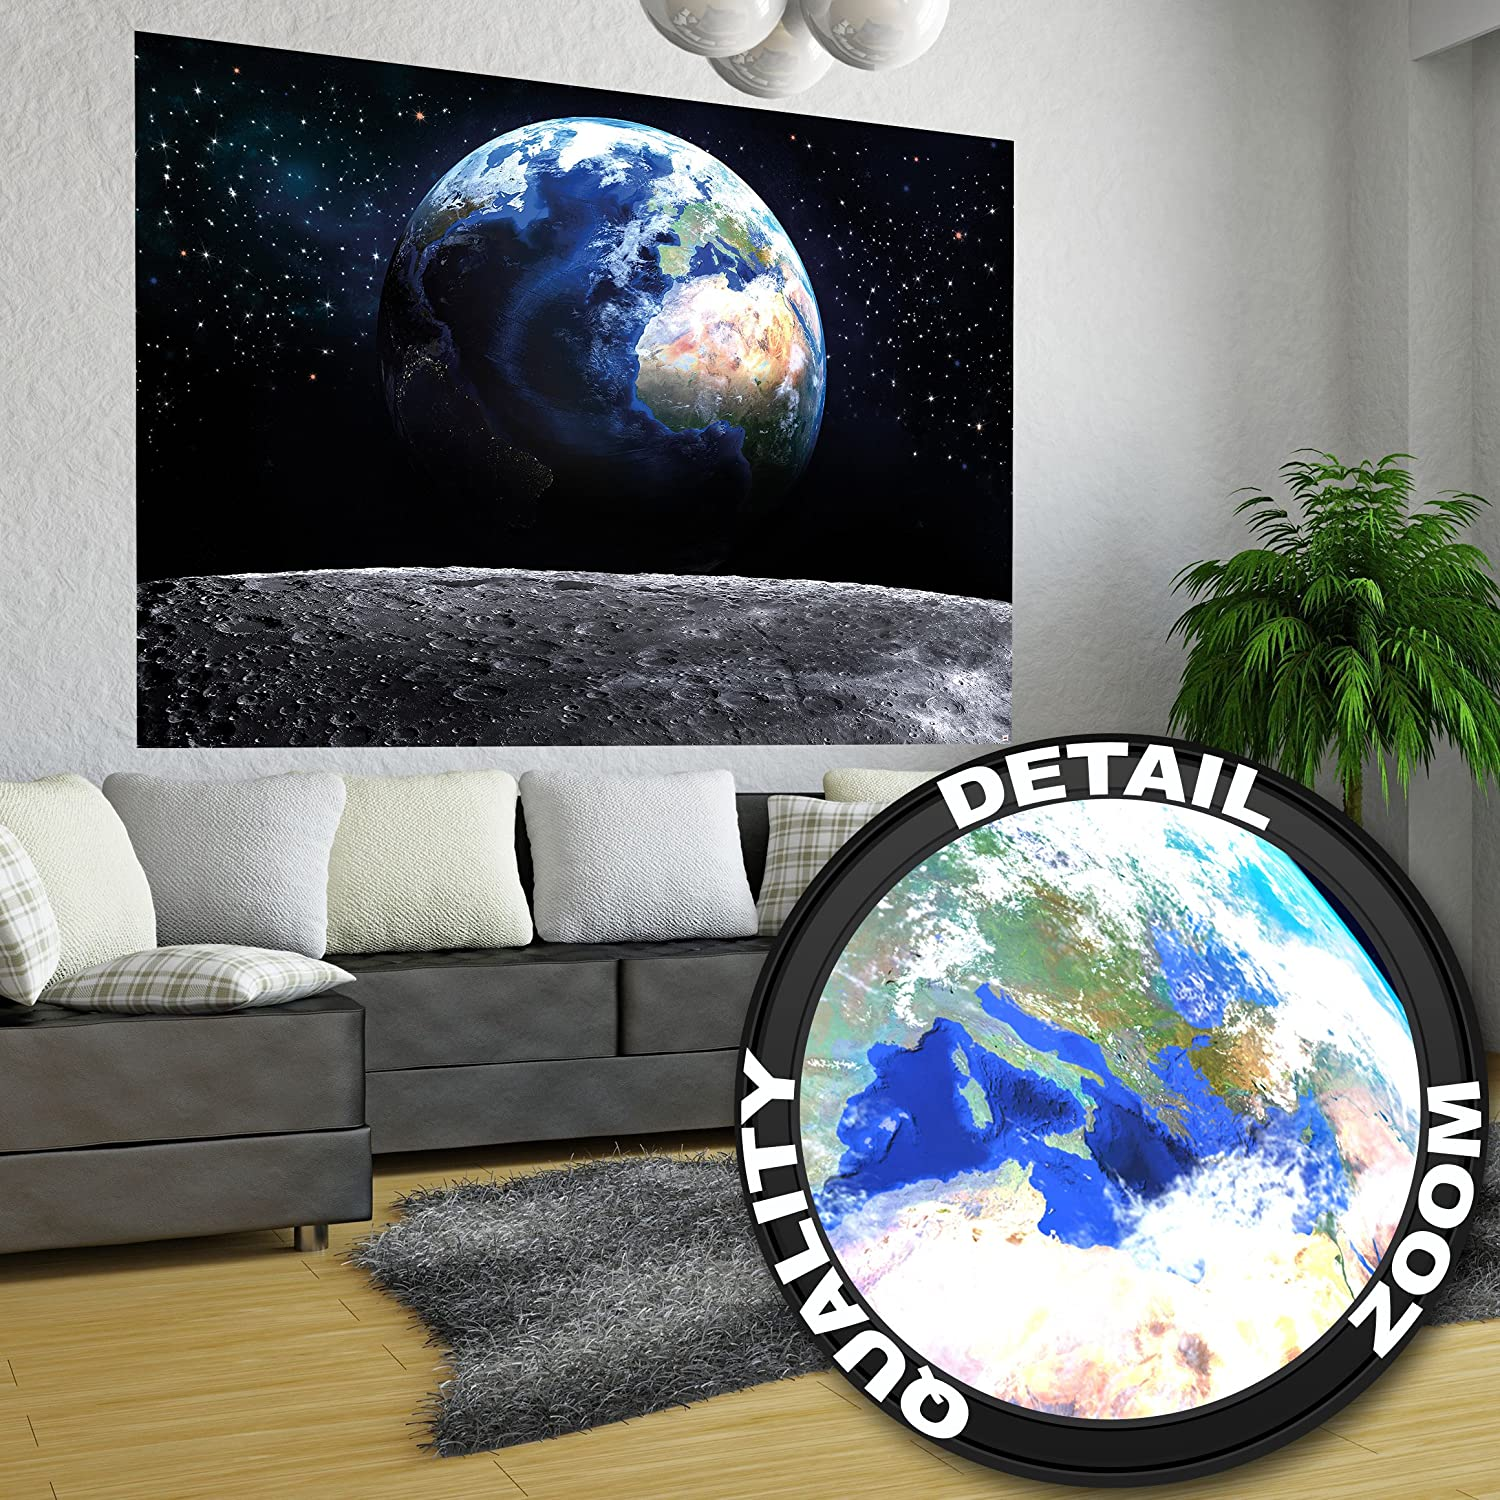 amazon com view moon to earth xxl mural the window to the earth amazon com view moon to earth xxl mural the window to the earth poster 55 inch x 39 4 inch by great art toys games